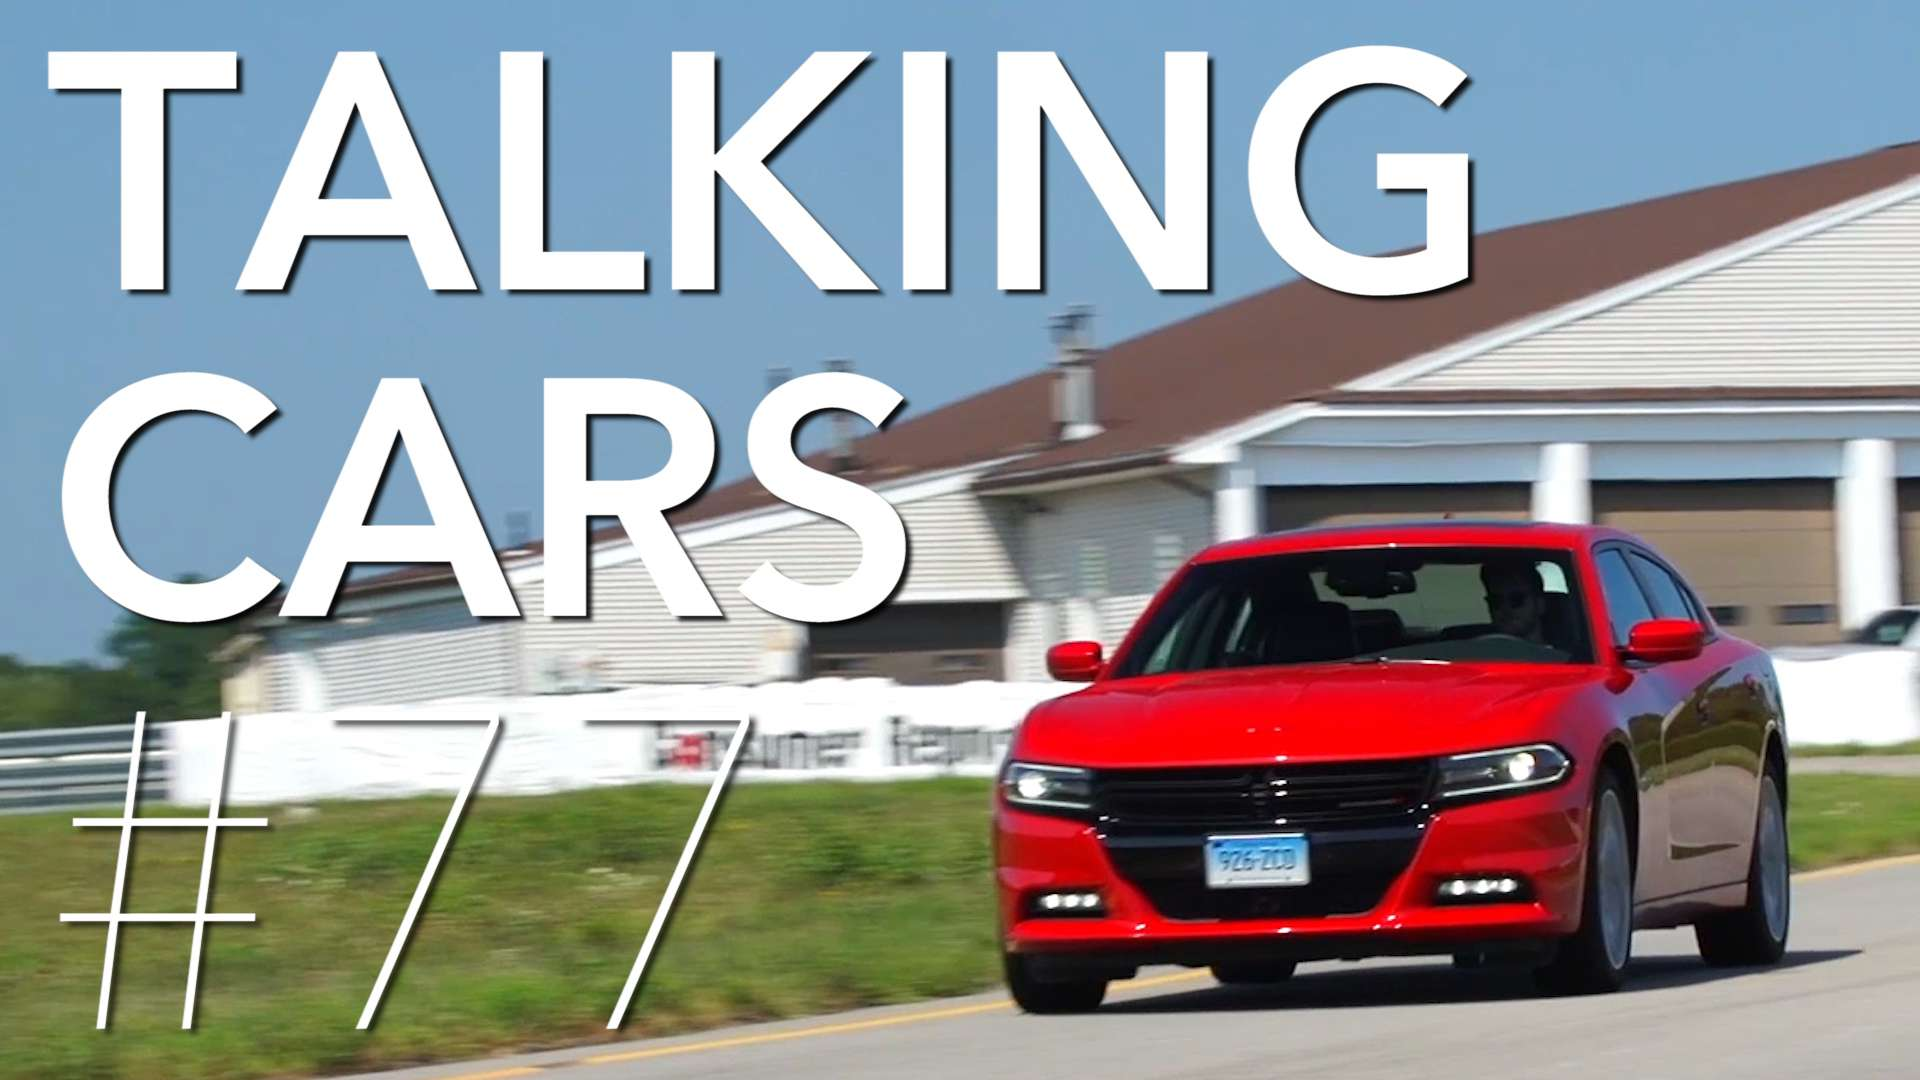 Talking Cars Video Podcast Tackles Tough Listener Questions